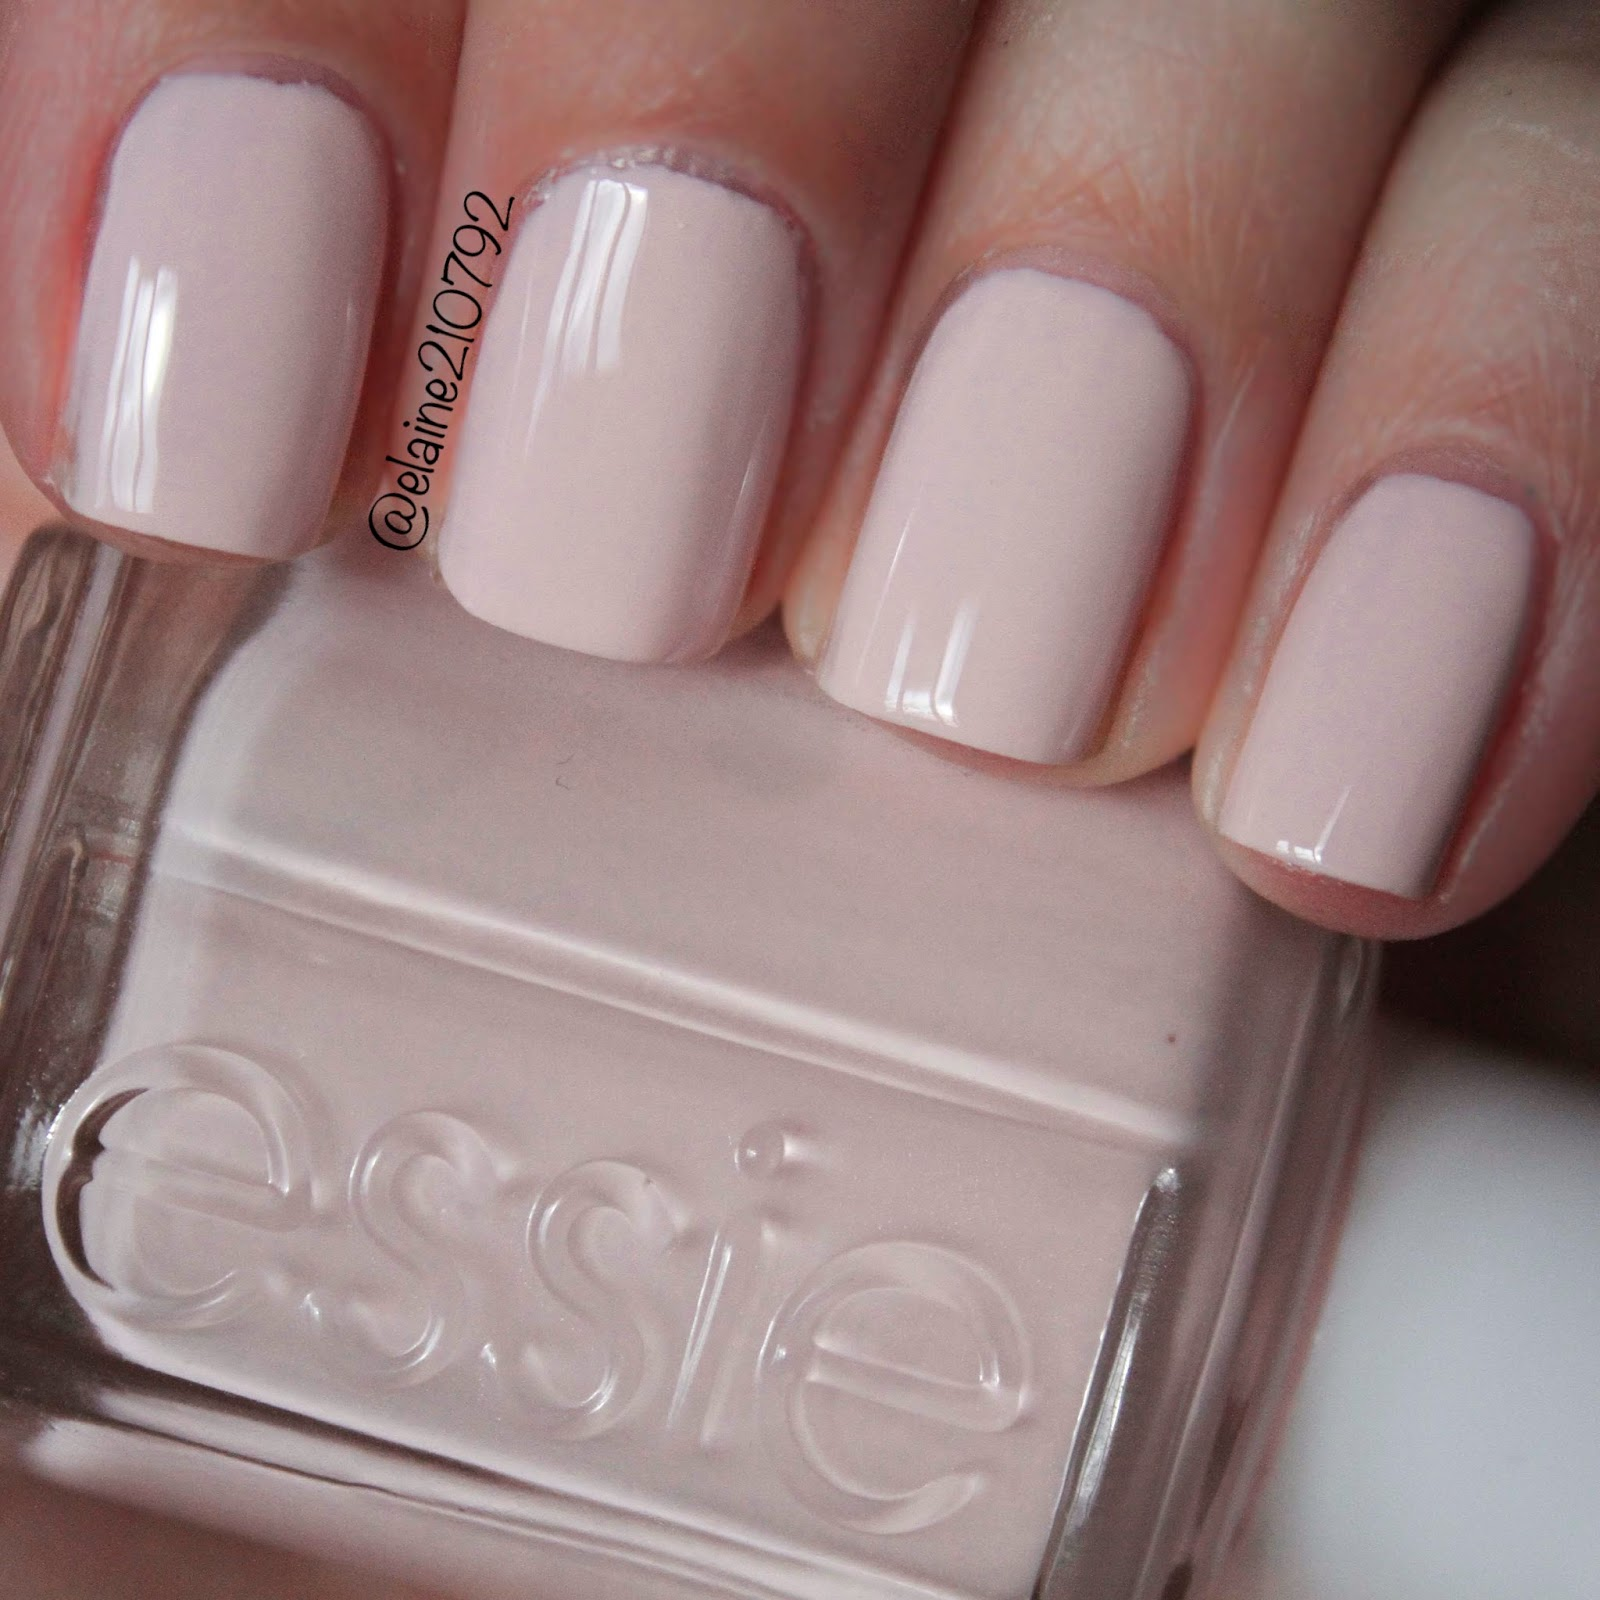 Elaine Nails: The Nail and Beauty Link Haul & Swatches